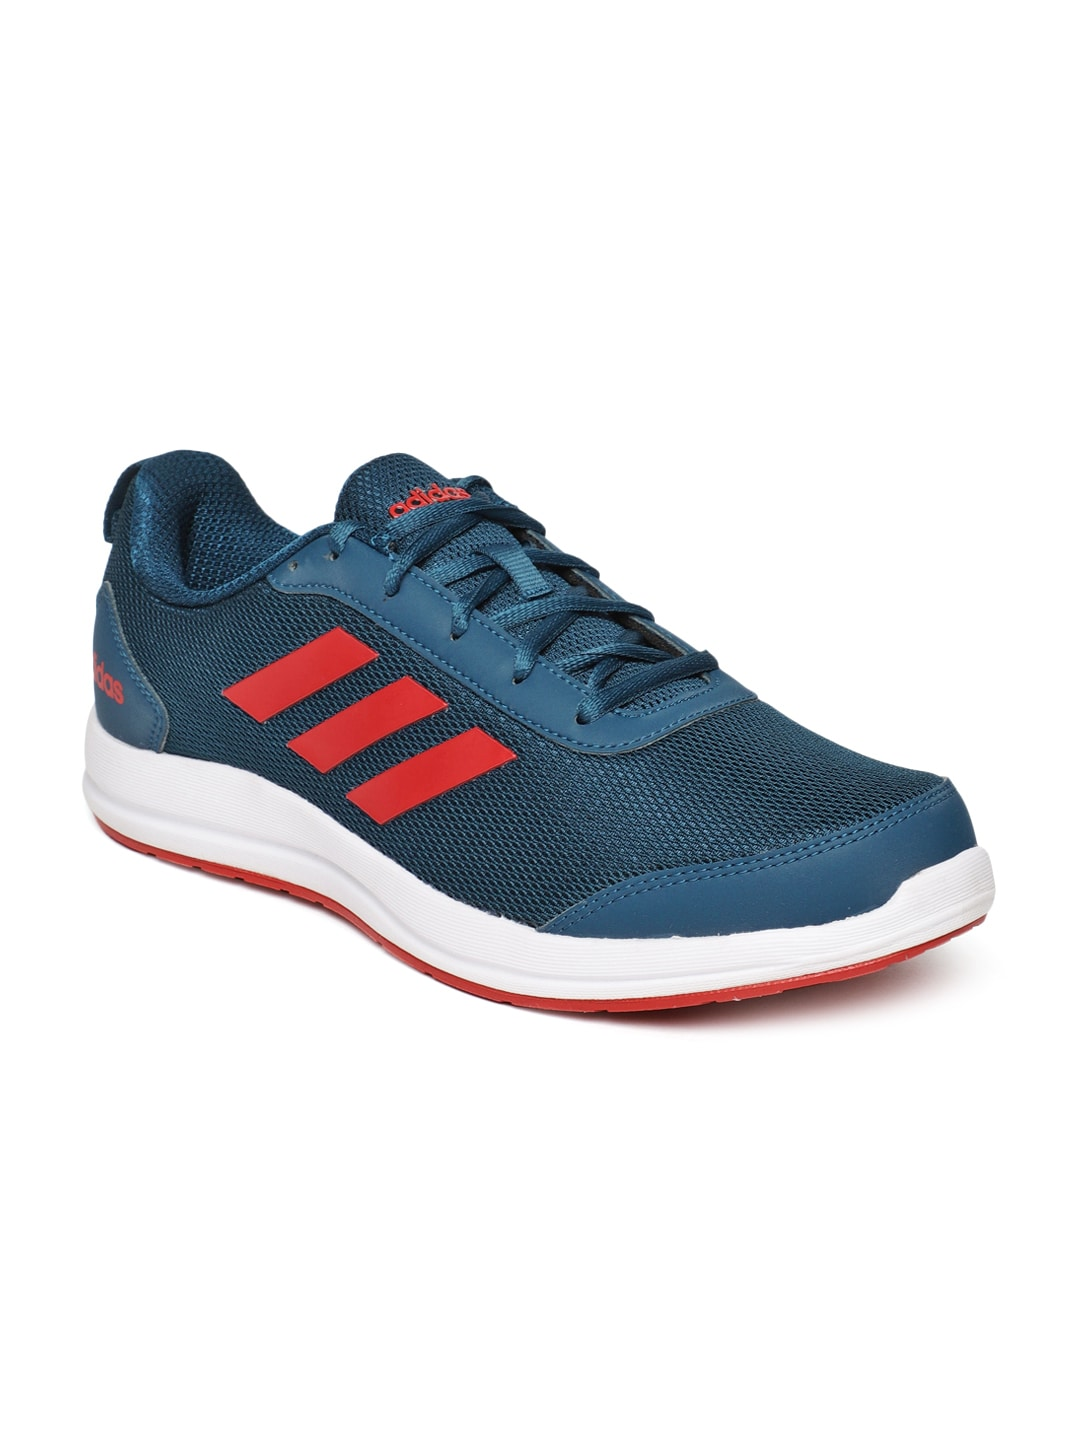 d9d834f70ae Buy ADIDAS Men Navy Blue ADI Pacer 4 M Running Shoes - Sports Shoes ...